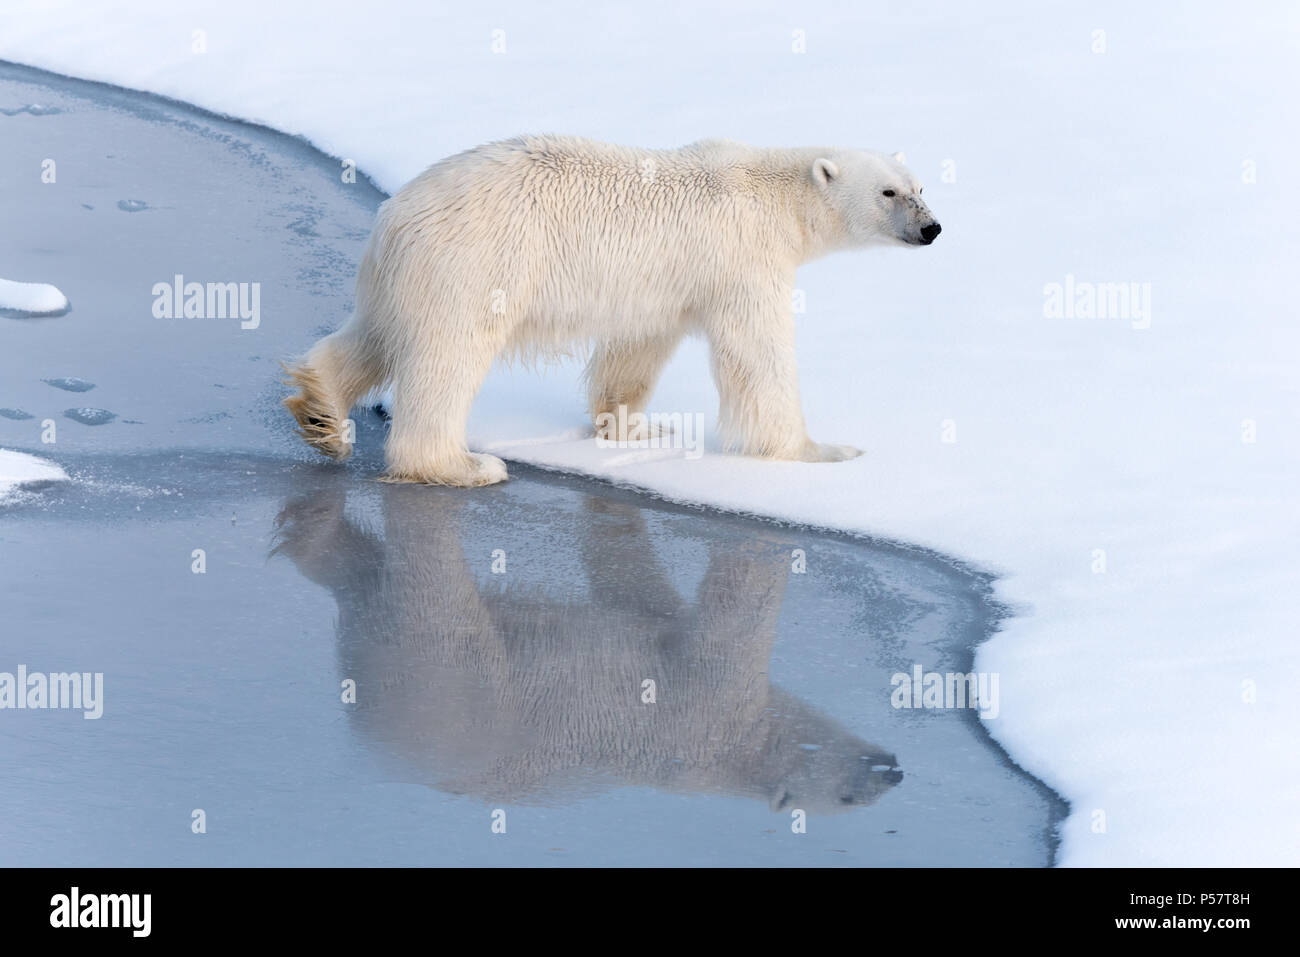 Polar Bear crossing thin ice with reflection - Stock Image